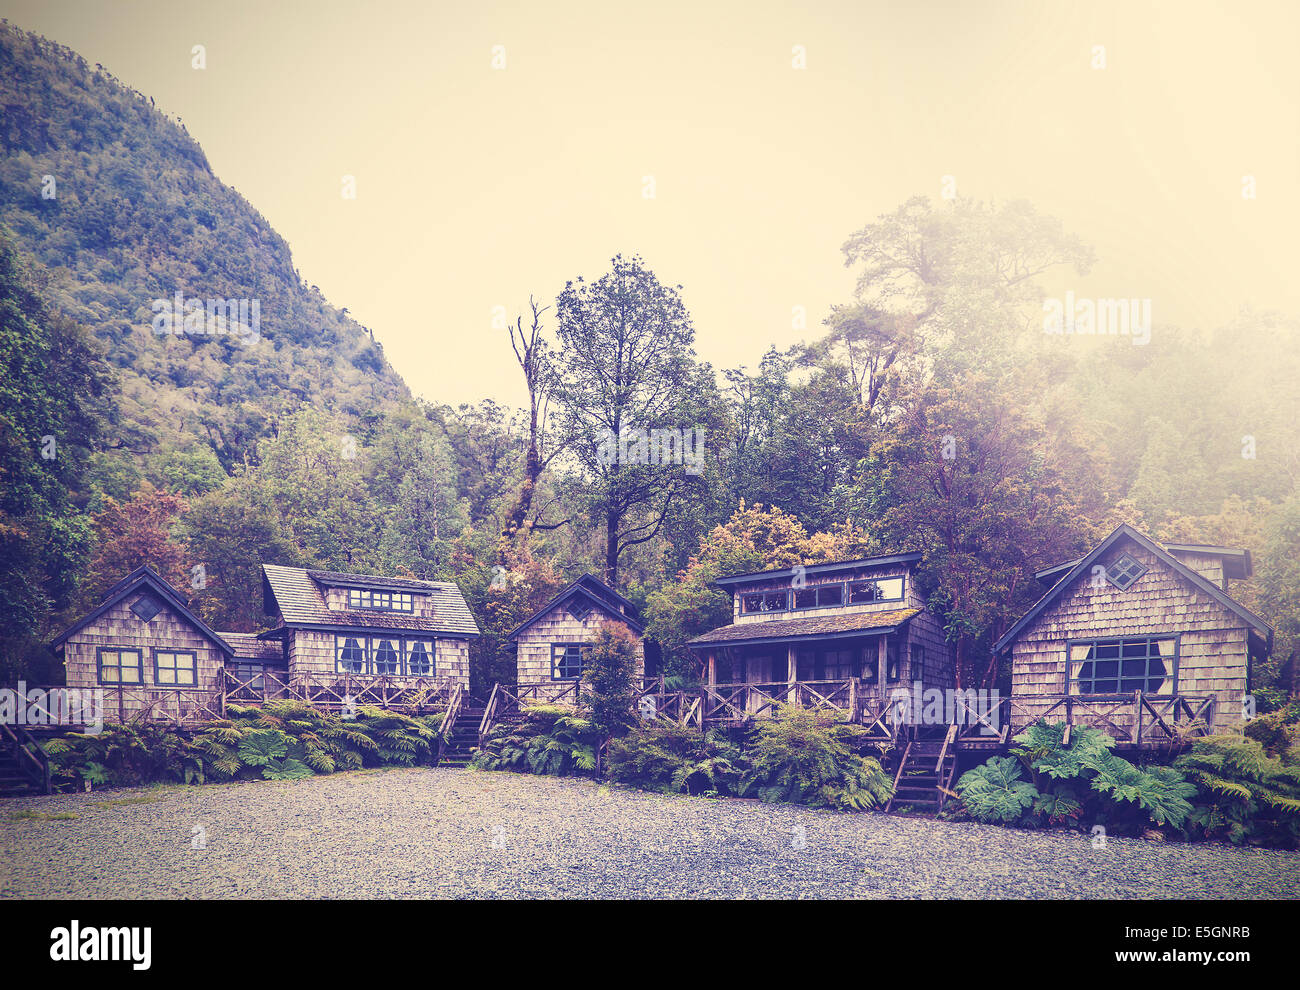 Vintage picture of village huts. - Stock Image